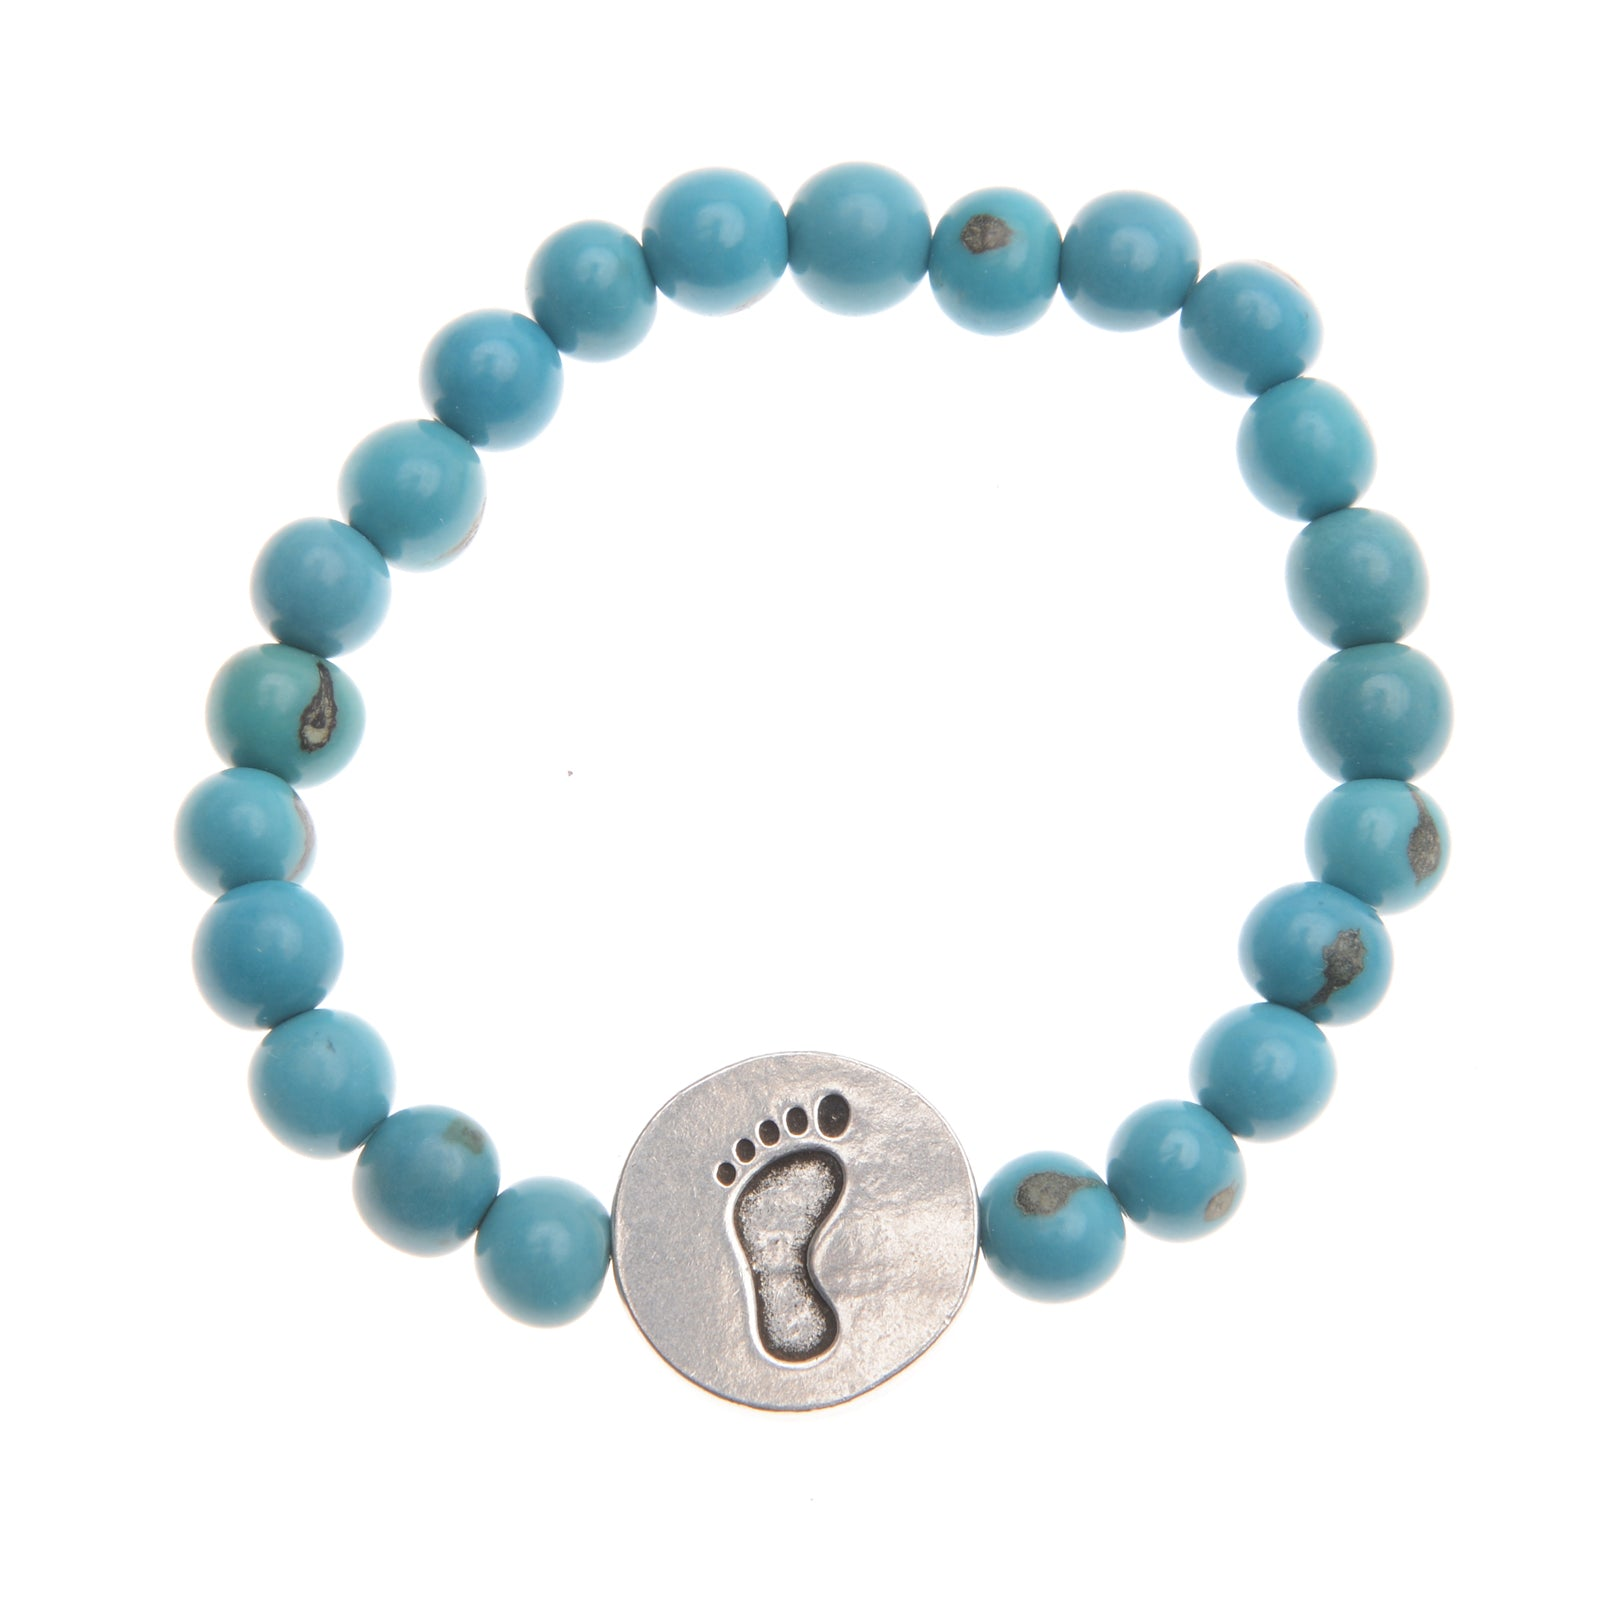 Walking Strong Bracelet - Turquoise ACAI Seeds of Life Bracelets